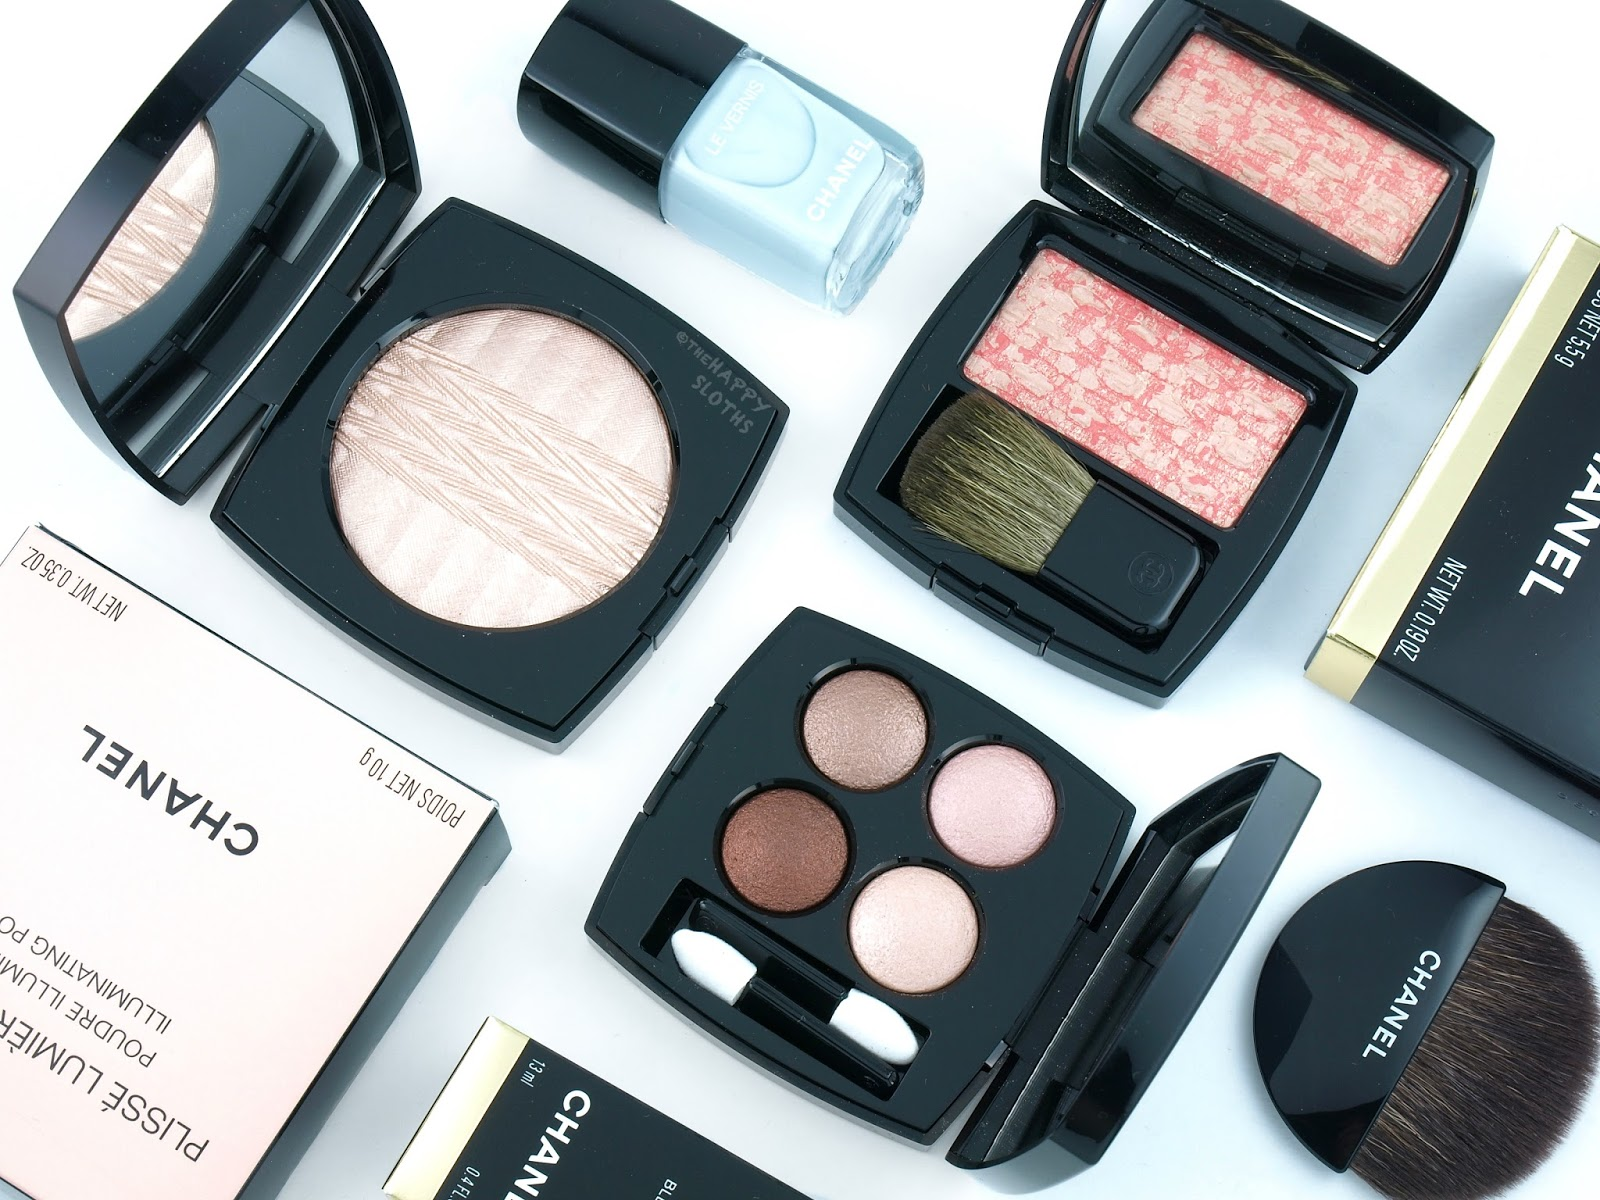 Chanel Spring 2017 Énergies et Puretés Collection: Review and Swatches